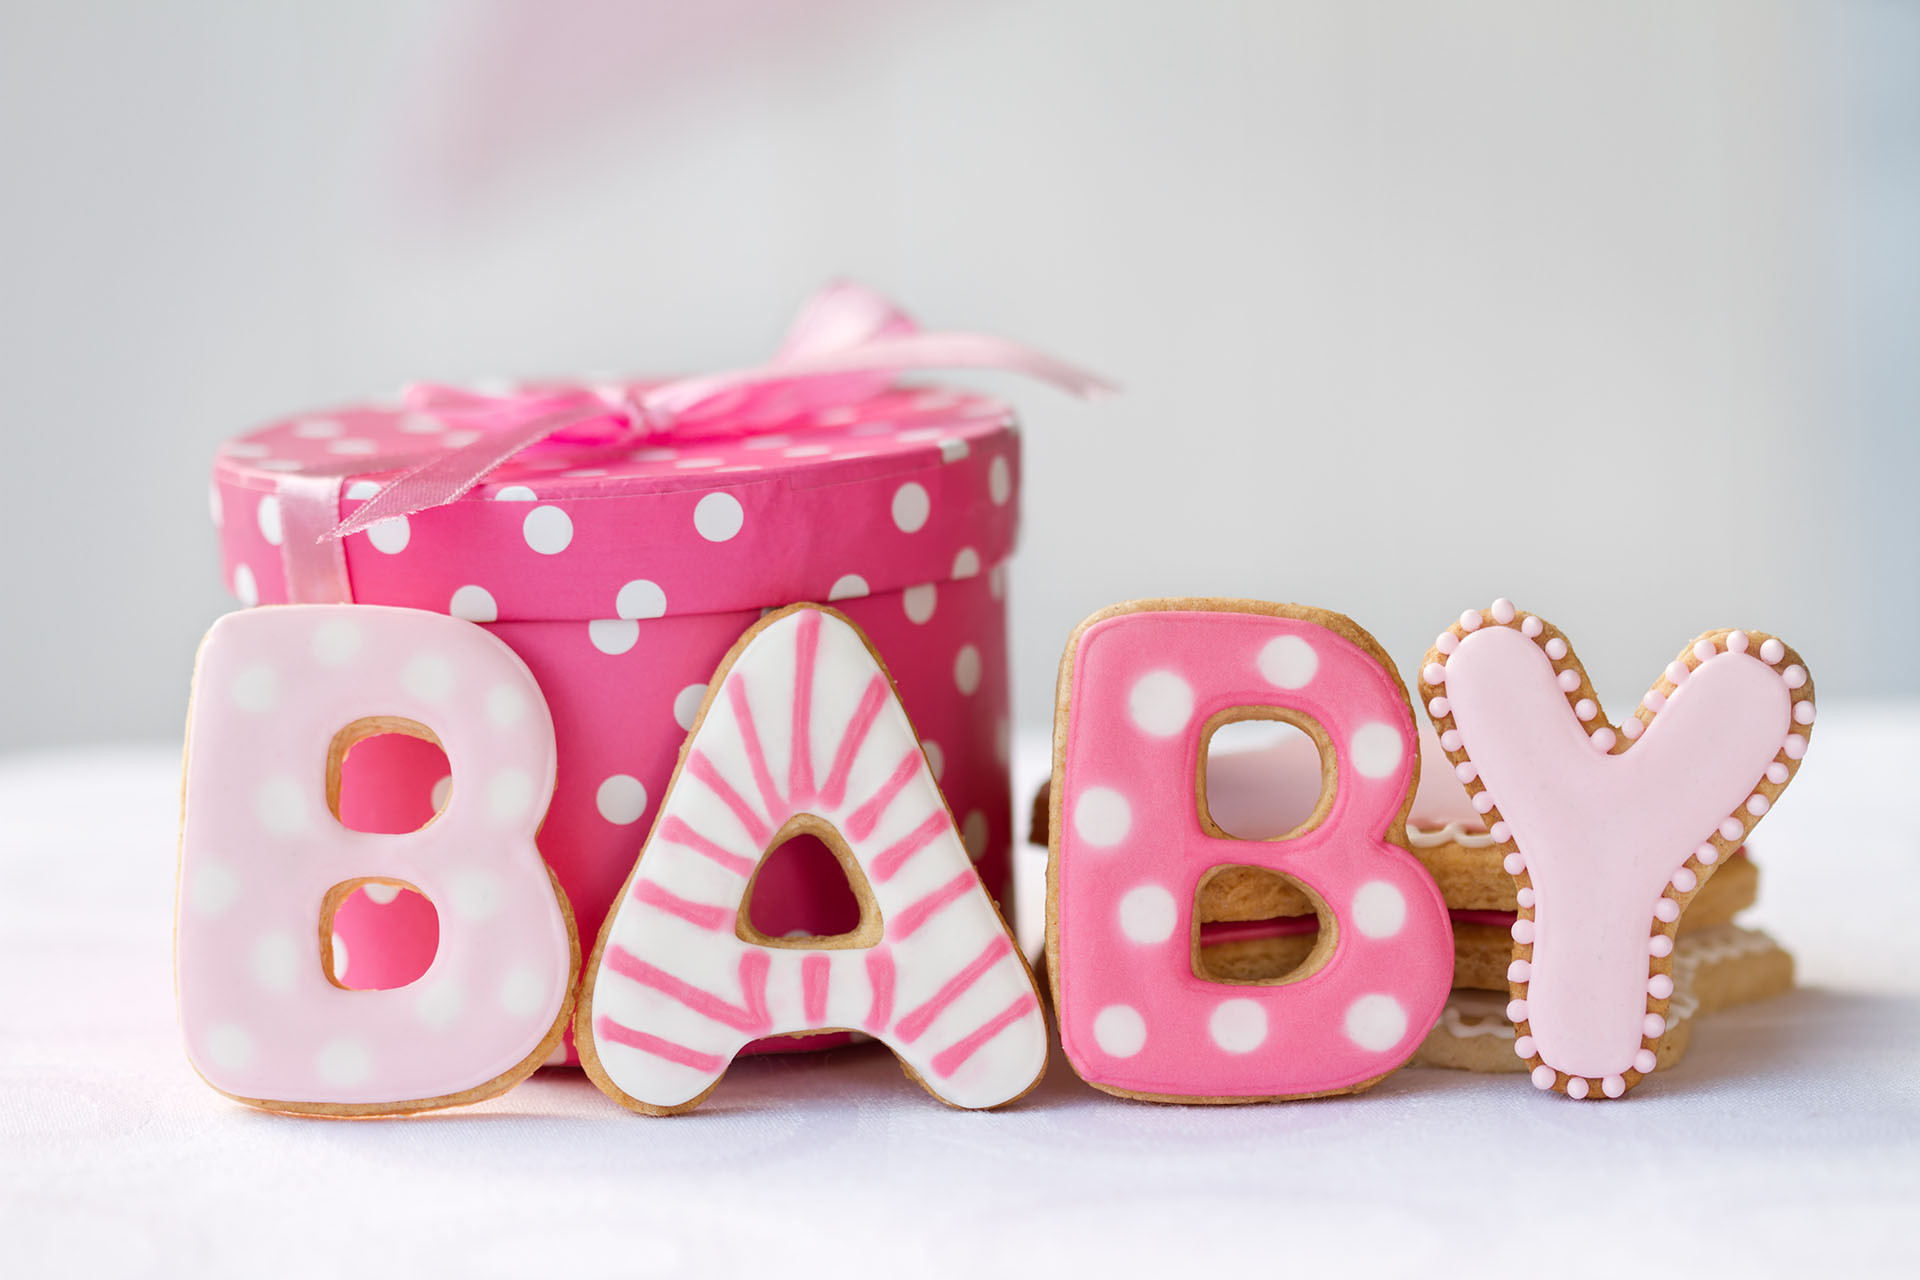 Baby Gender Reveal Gift Ideas  Top 5 Gender Reveal Party Gift Ideas